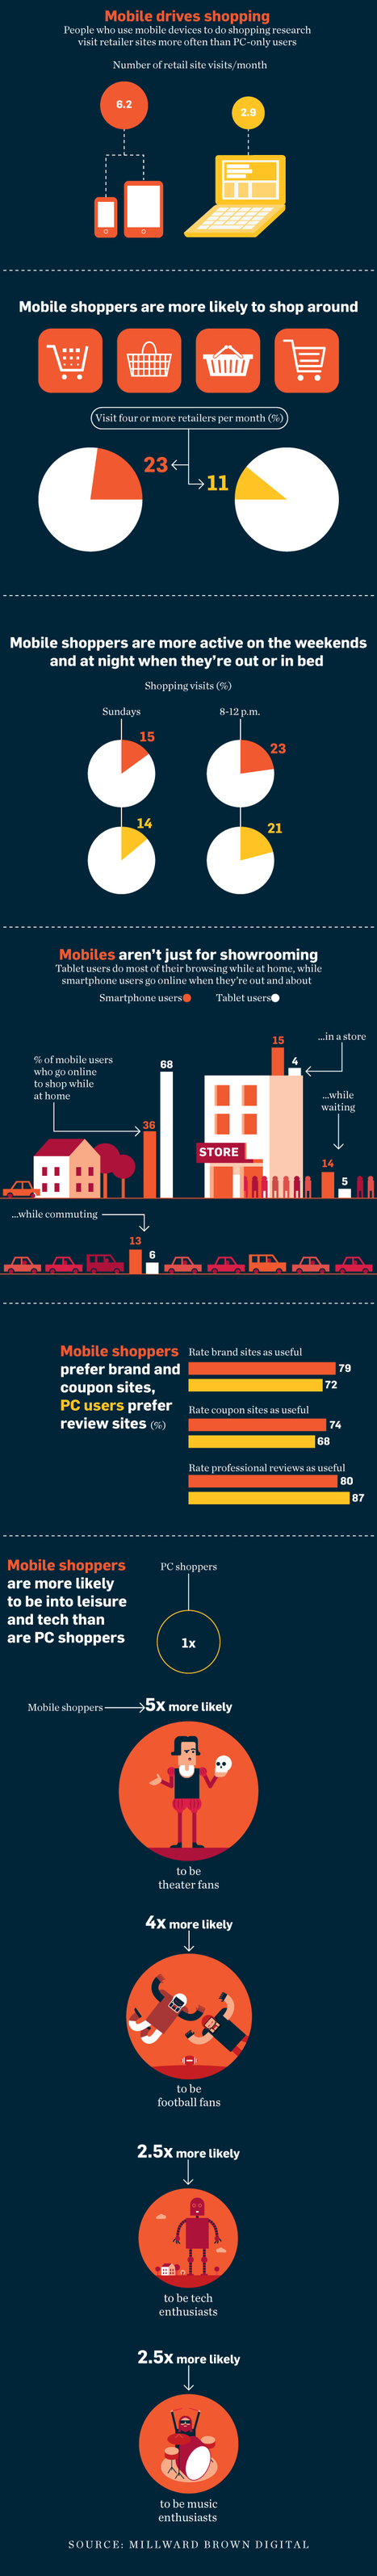 People Shopping on Mobile Devices Visit More Sites Than Those on a PC | Consumer Behavior in Digital Environments | Scoop.it